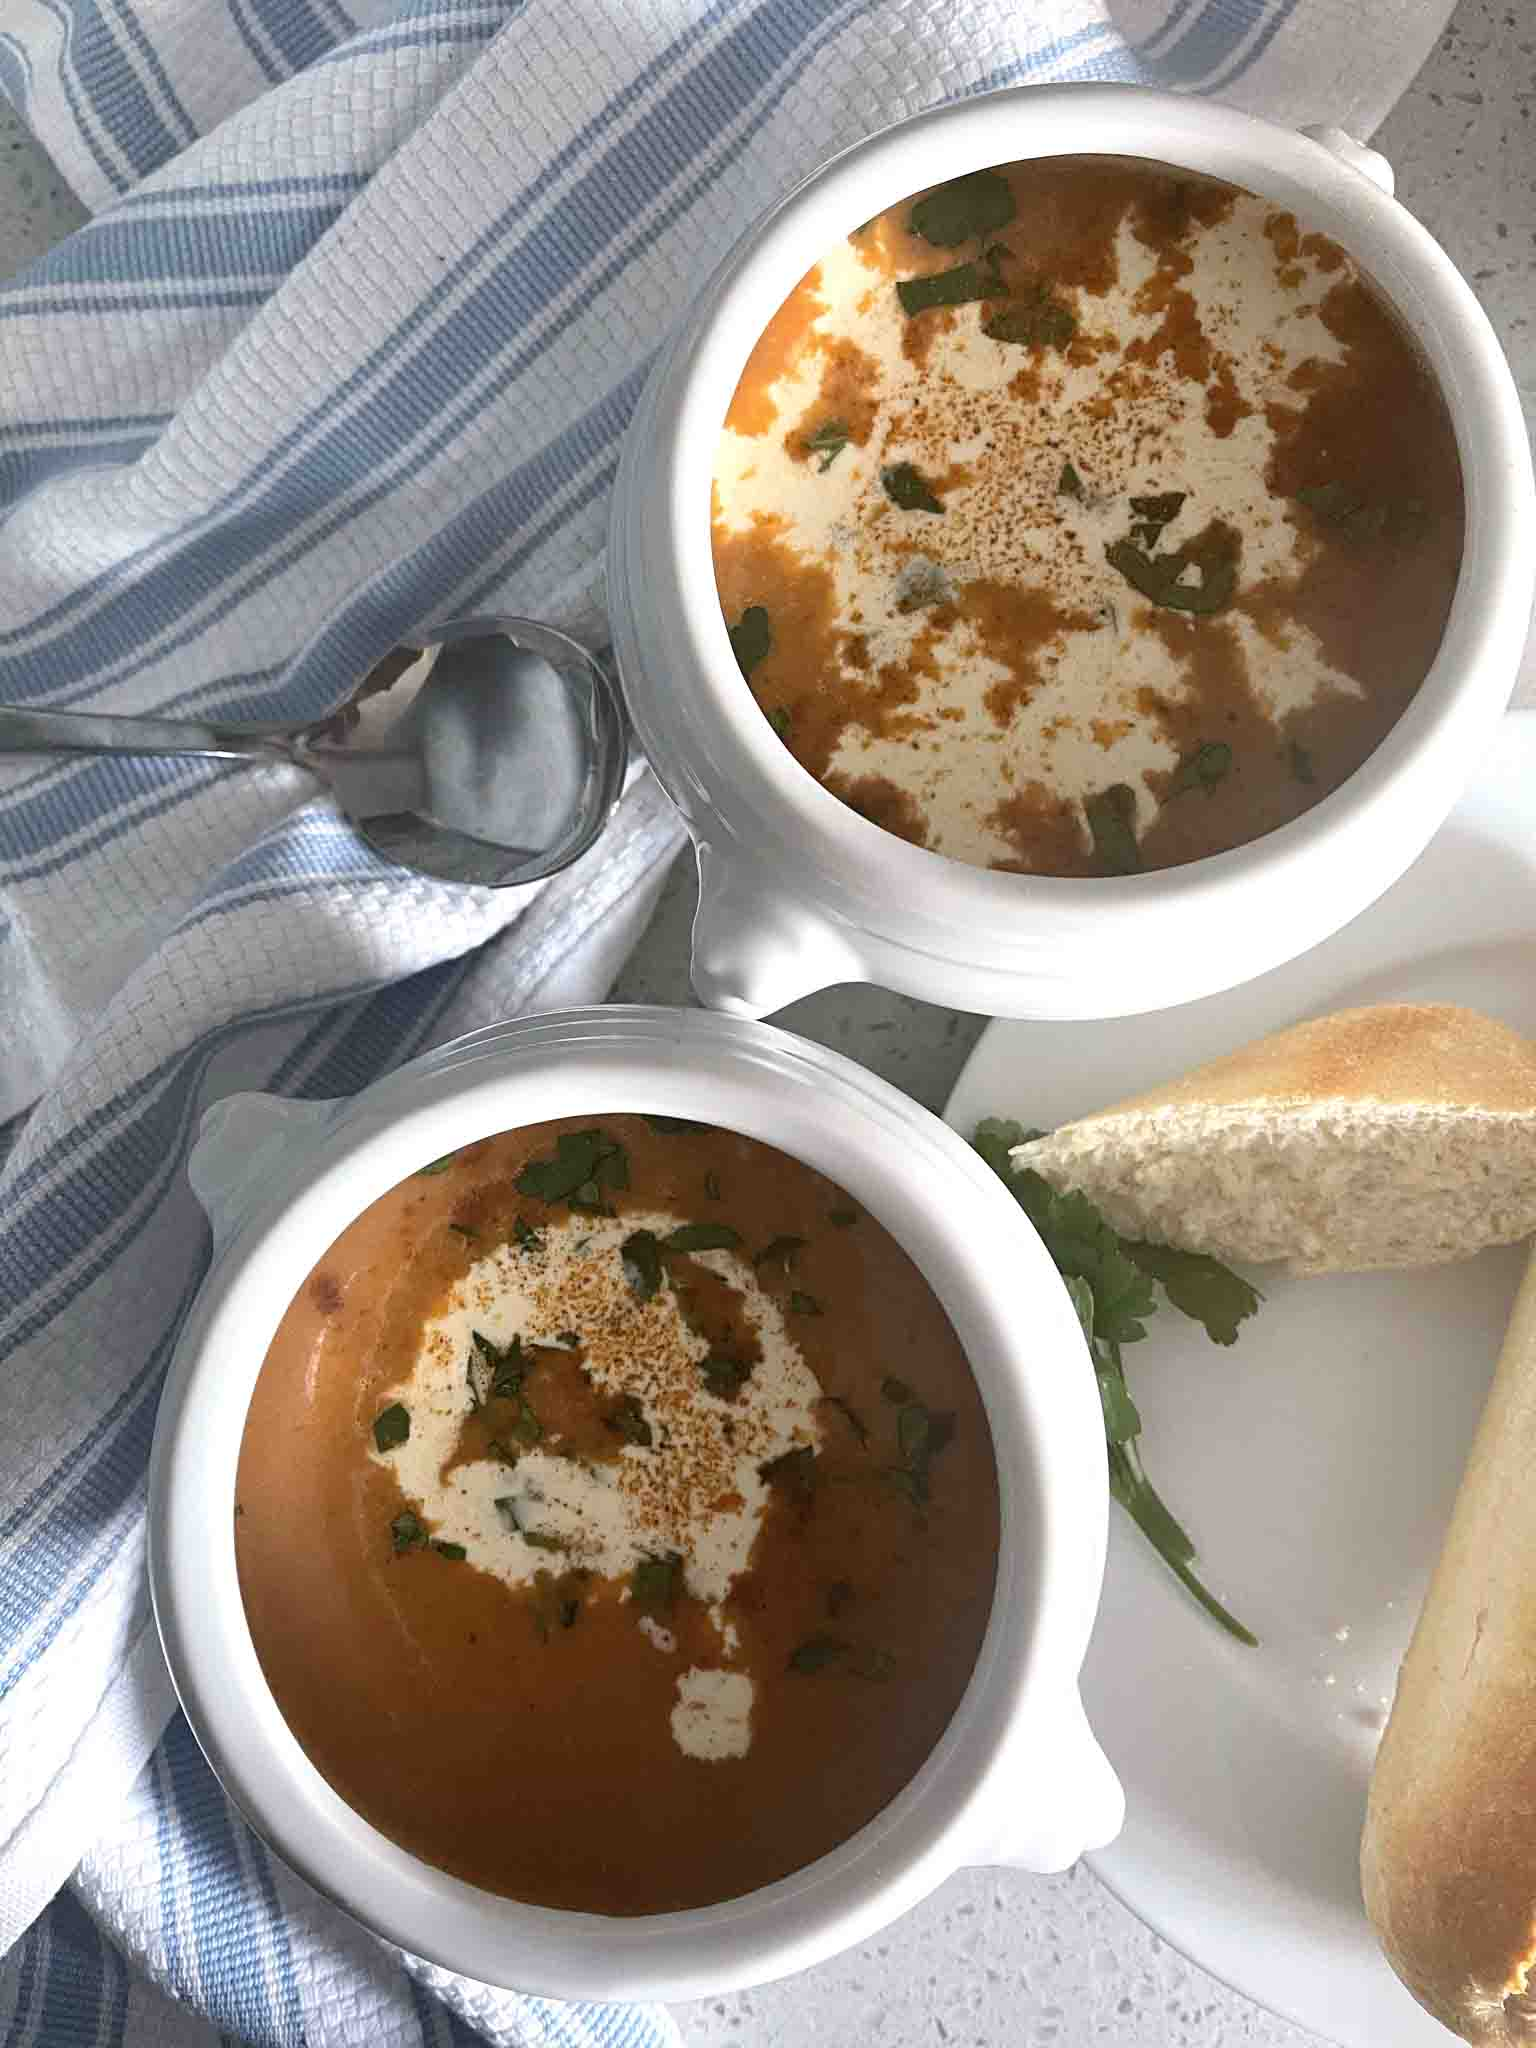 two bowls of shellfish bisque soup.